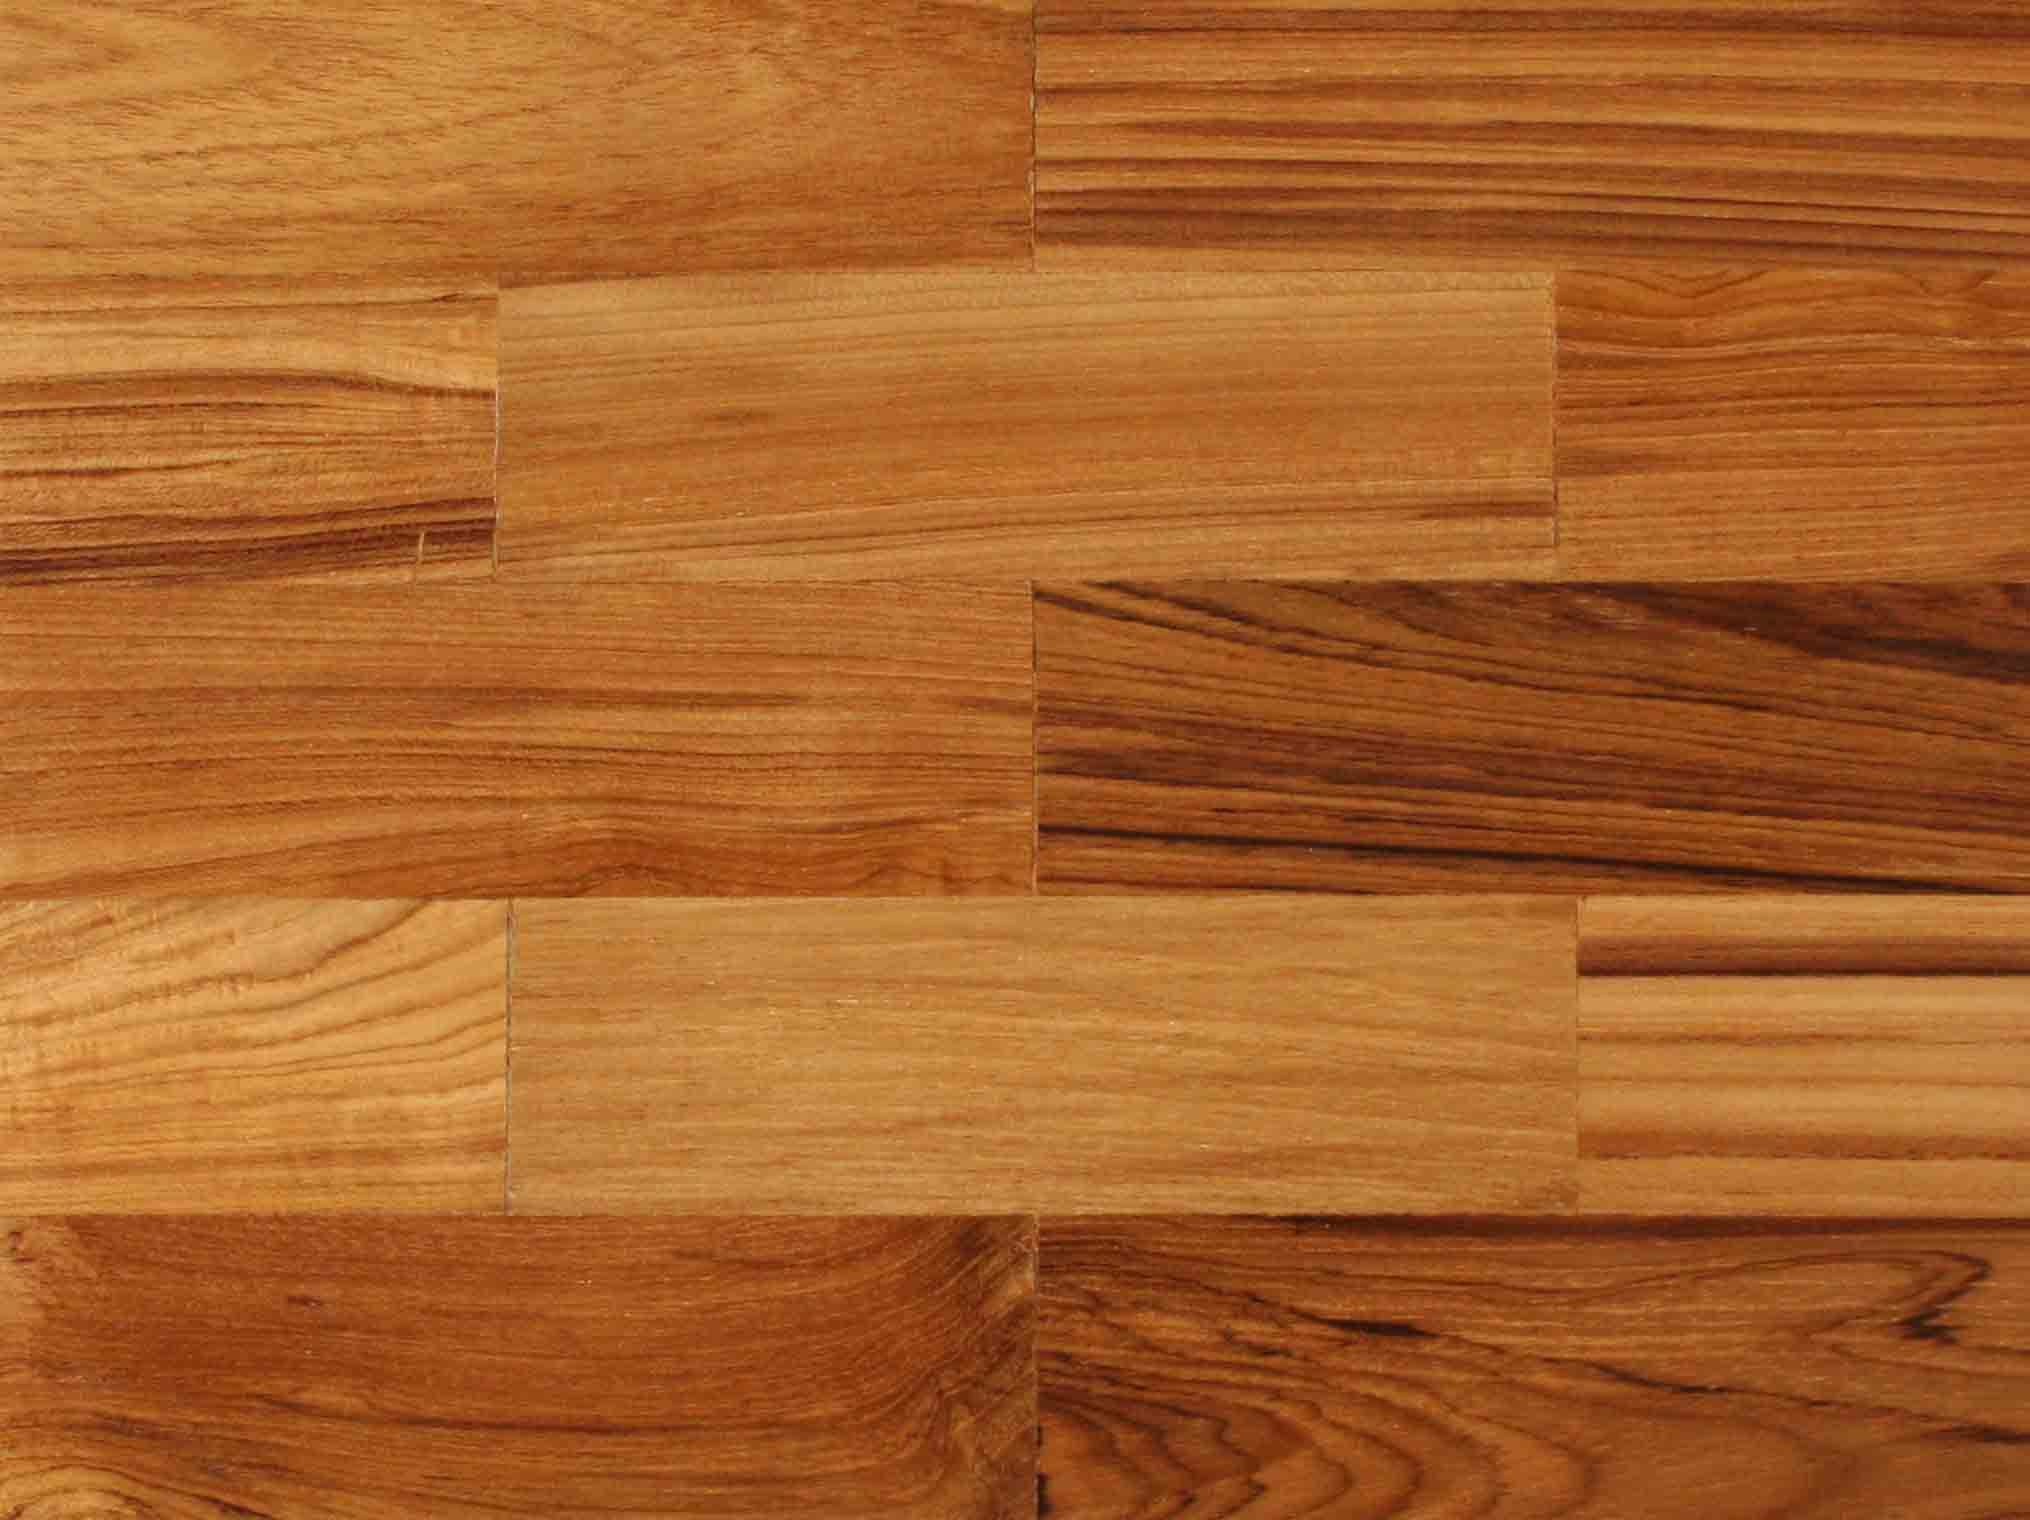 Wood Floor Best Wooden Floors